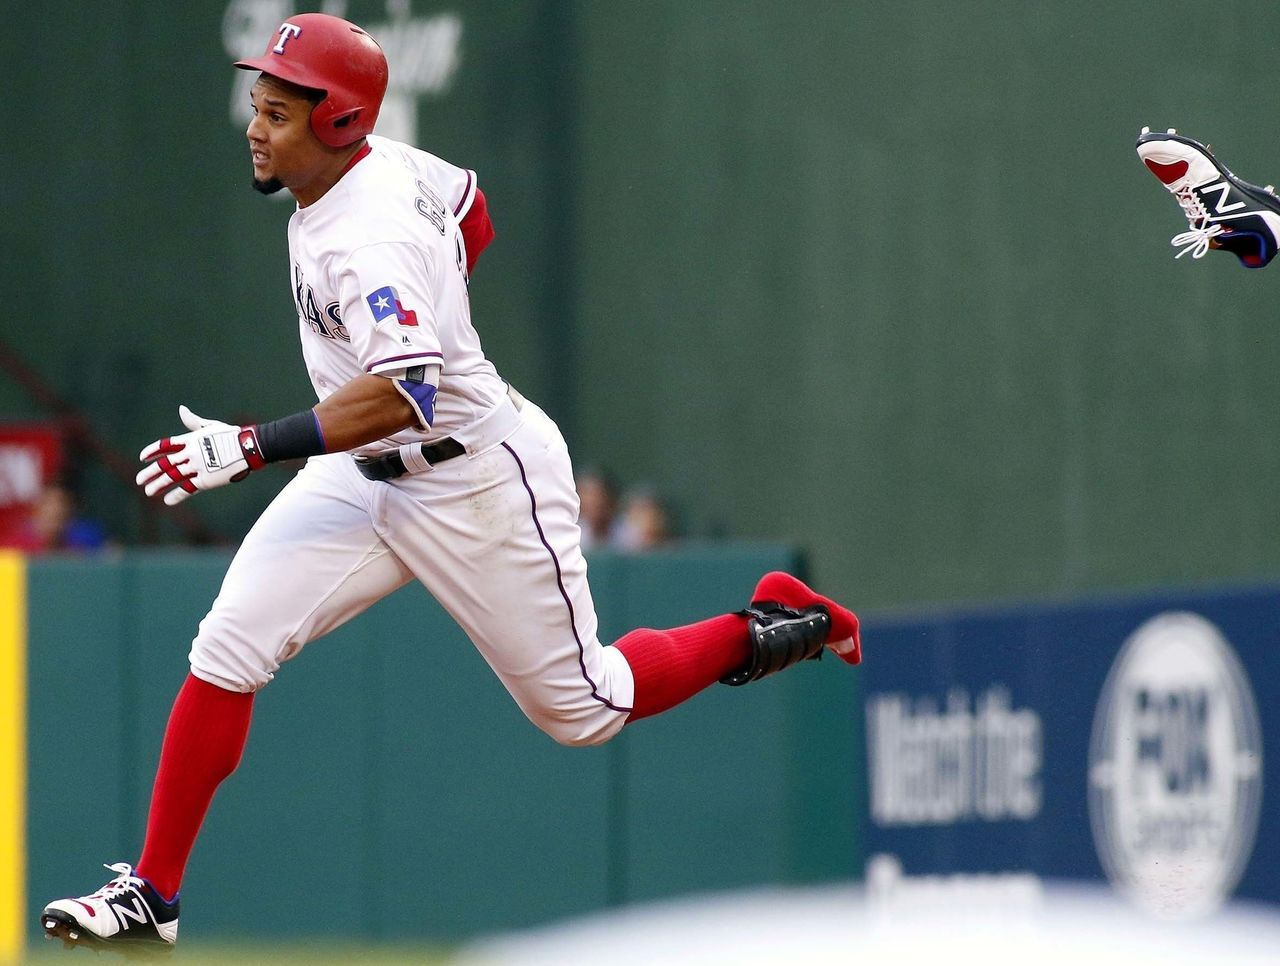 Cropped 2017 04 29t234815z 1509043742 nocid rtrmadp 3 mlb los angeles angels at texas rangers